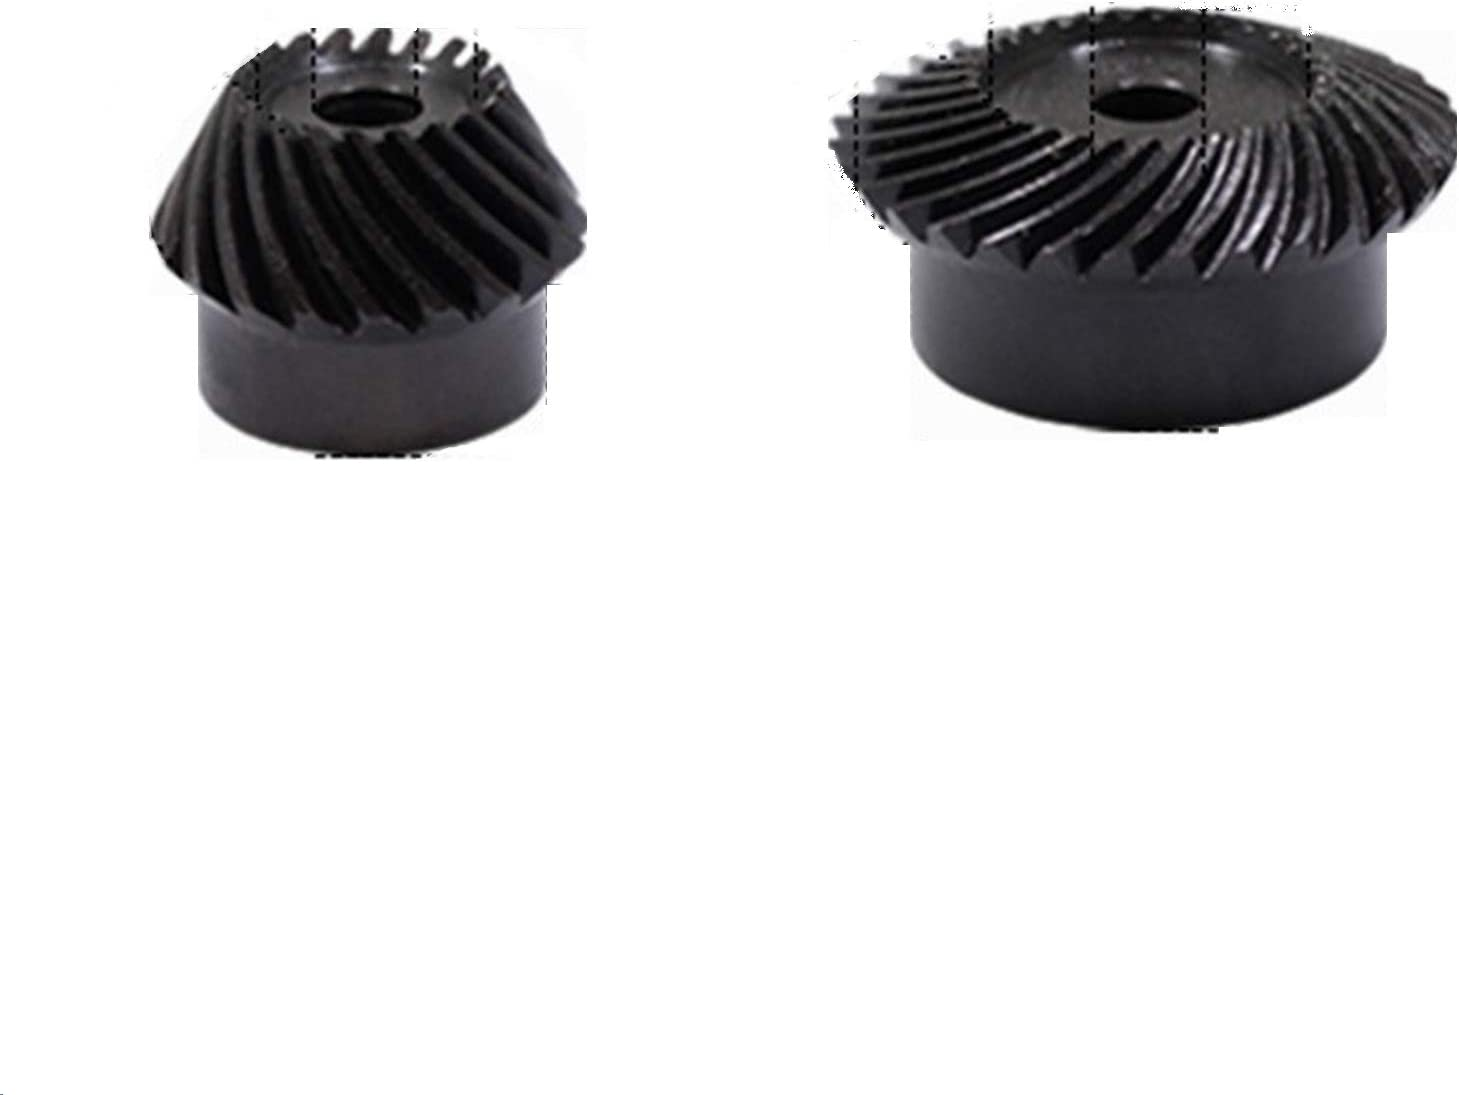 TONGCHAO Tchaogr 2pcs 1:2 Charlotte Mall Deluxe Bevel Gear 2 30t 15 Modulus + Teeth In